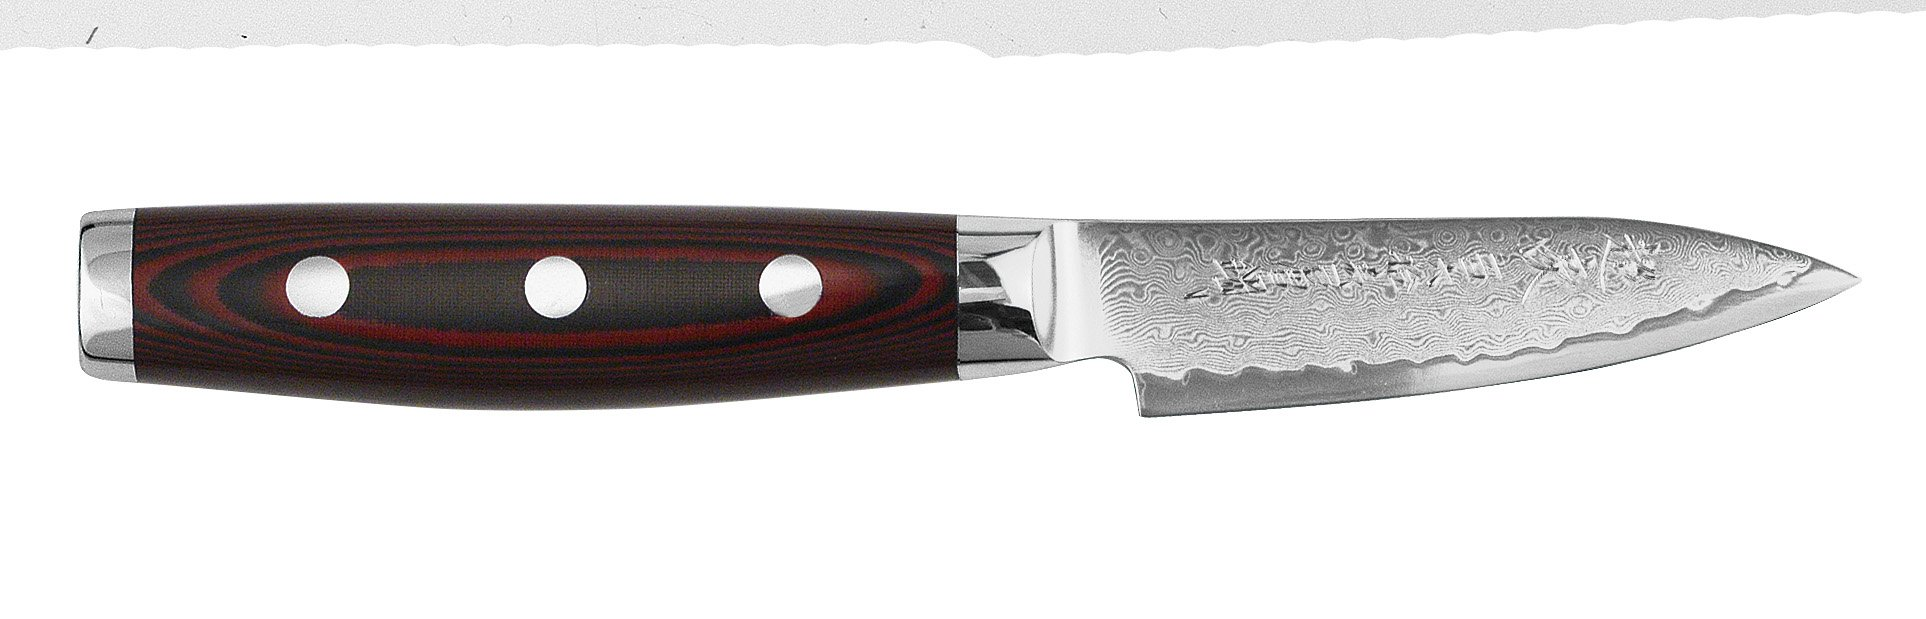 Yaxell Super Gou Paring Knife, 3-1/4-Inch by Yaxell